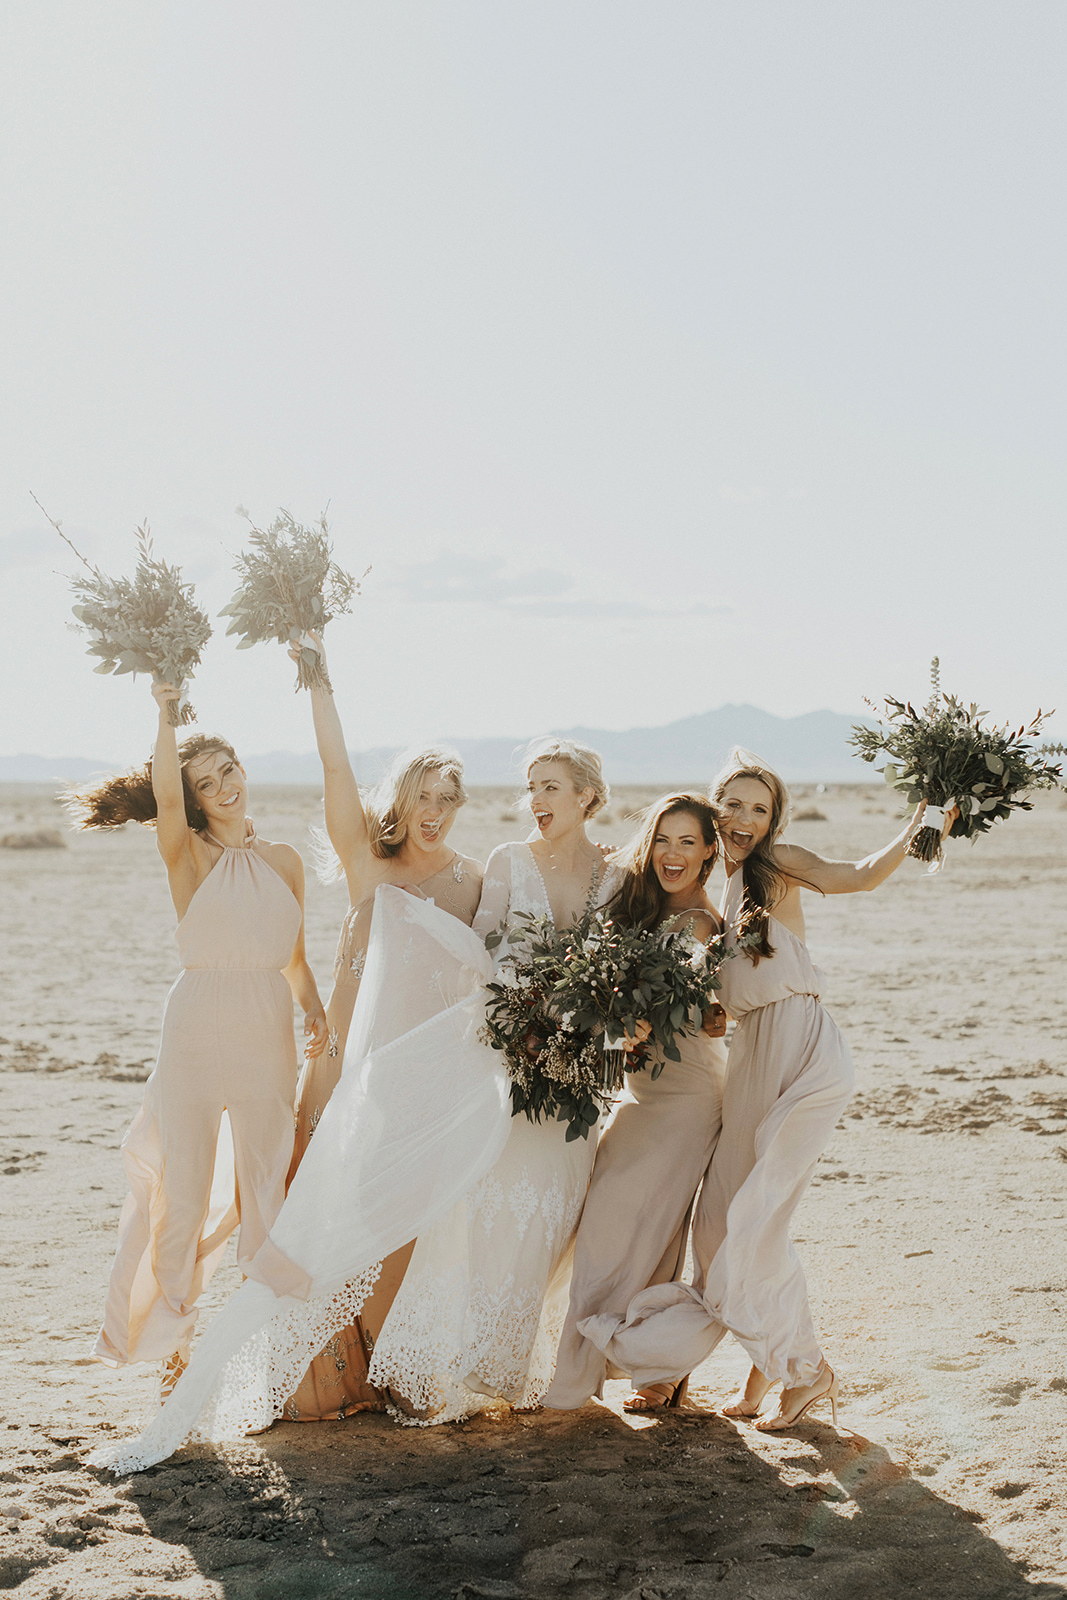 mismatched bridesmaids dresses india earl